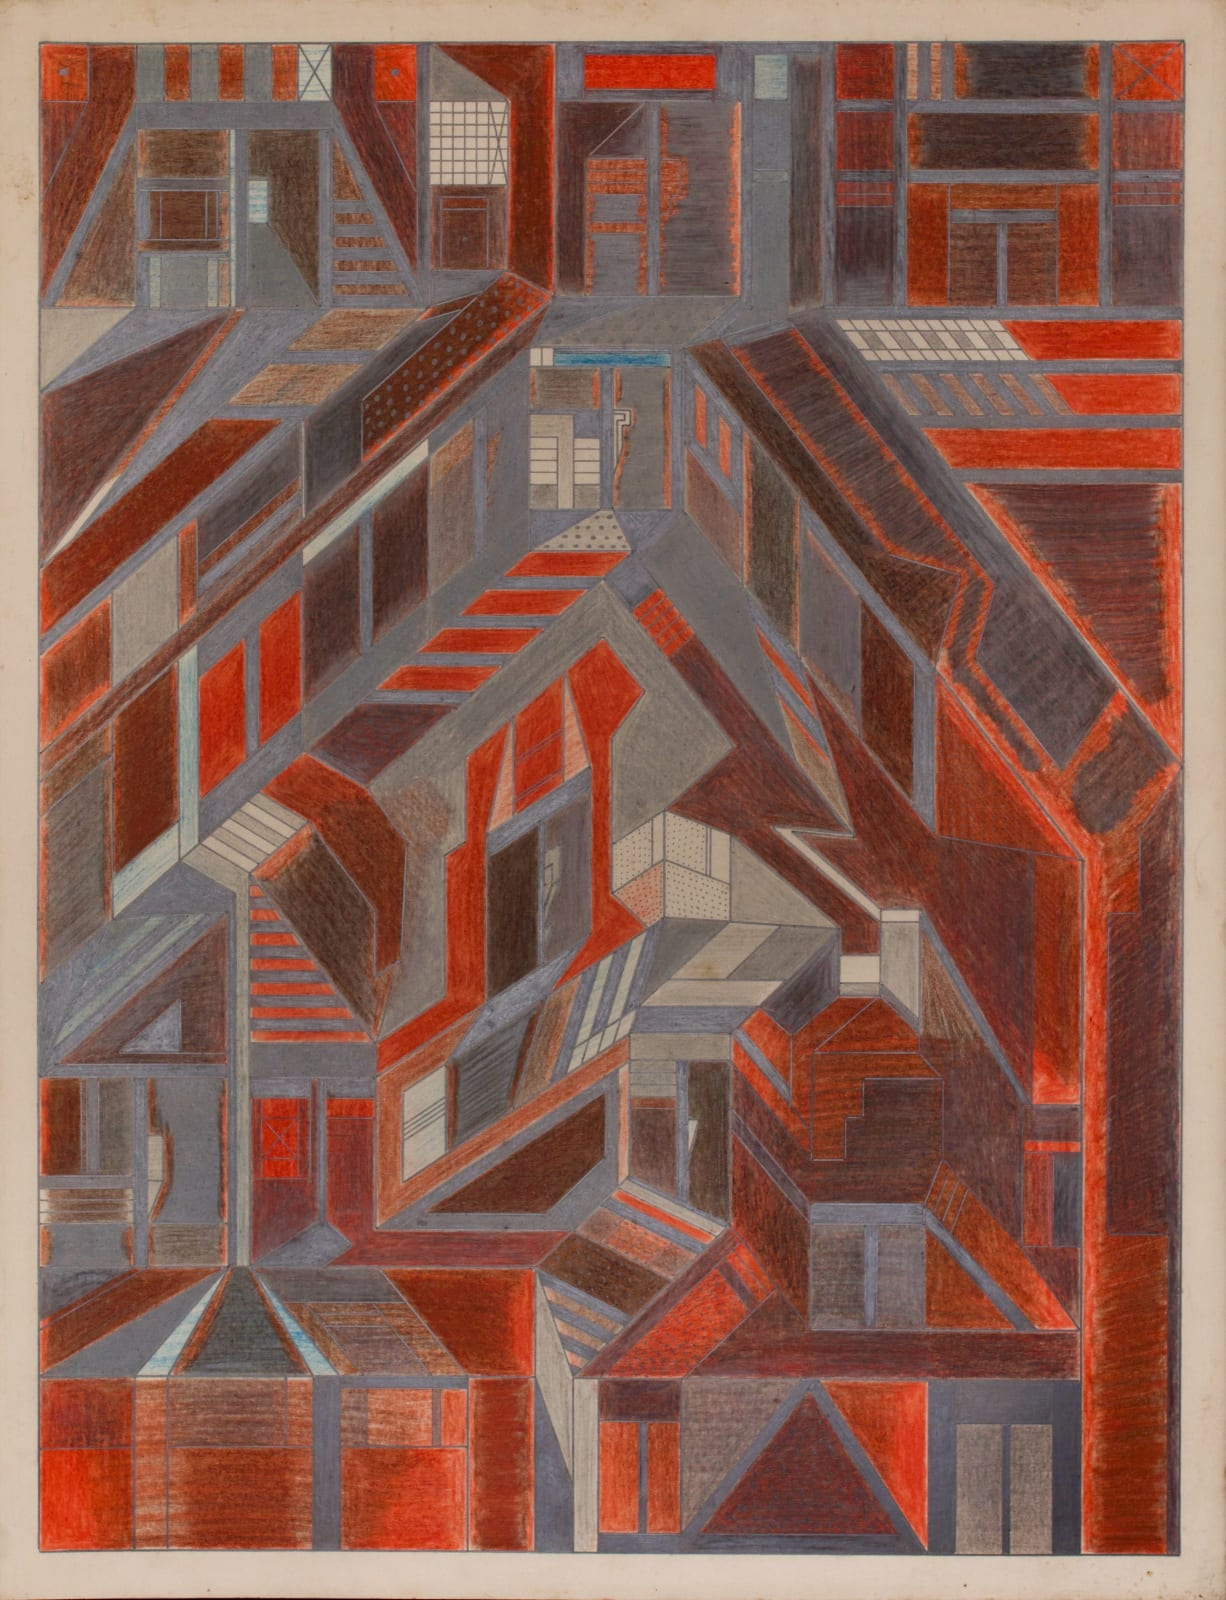 Untitled, ca. 1930 - 55 Colored pencil and graphite on paper 21 x 17 1/2 in. 53.3 x 44.5 cm. (DG 47)